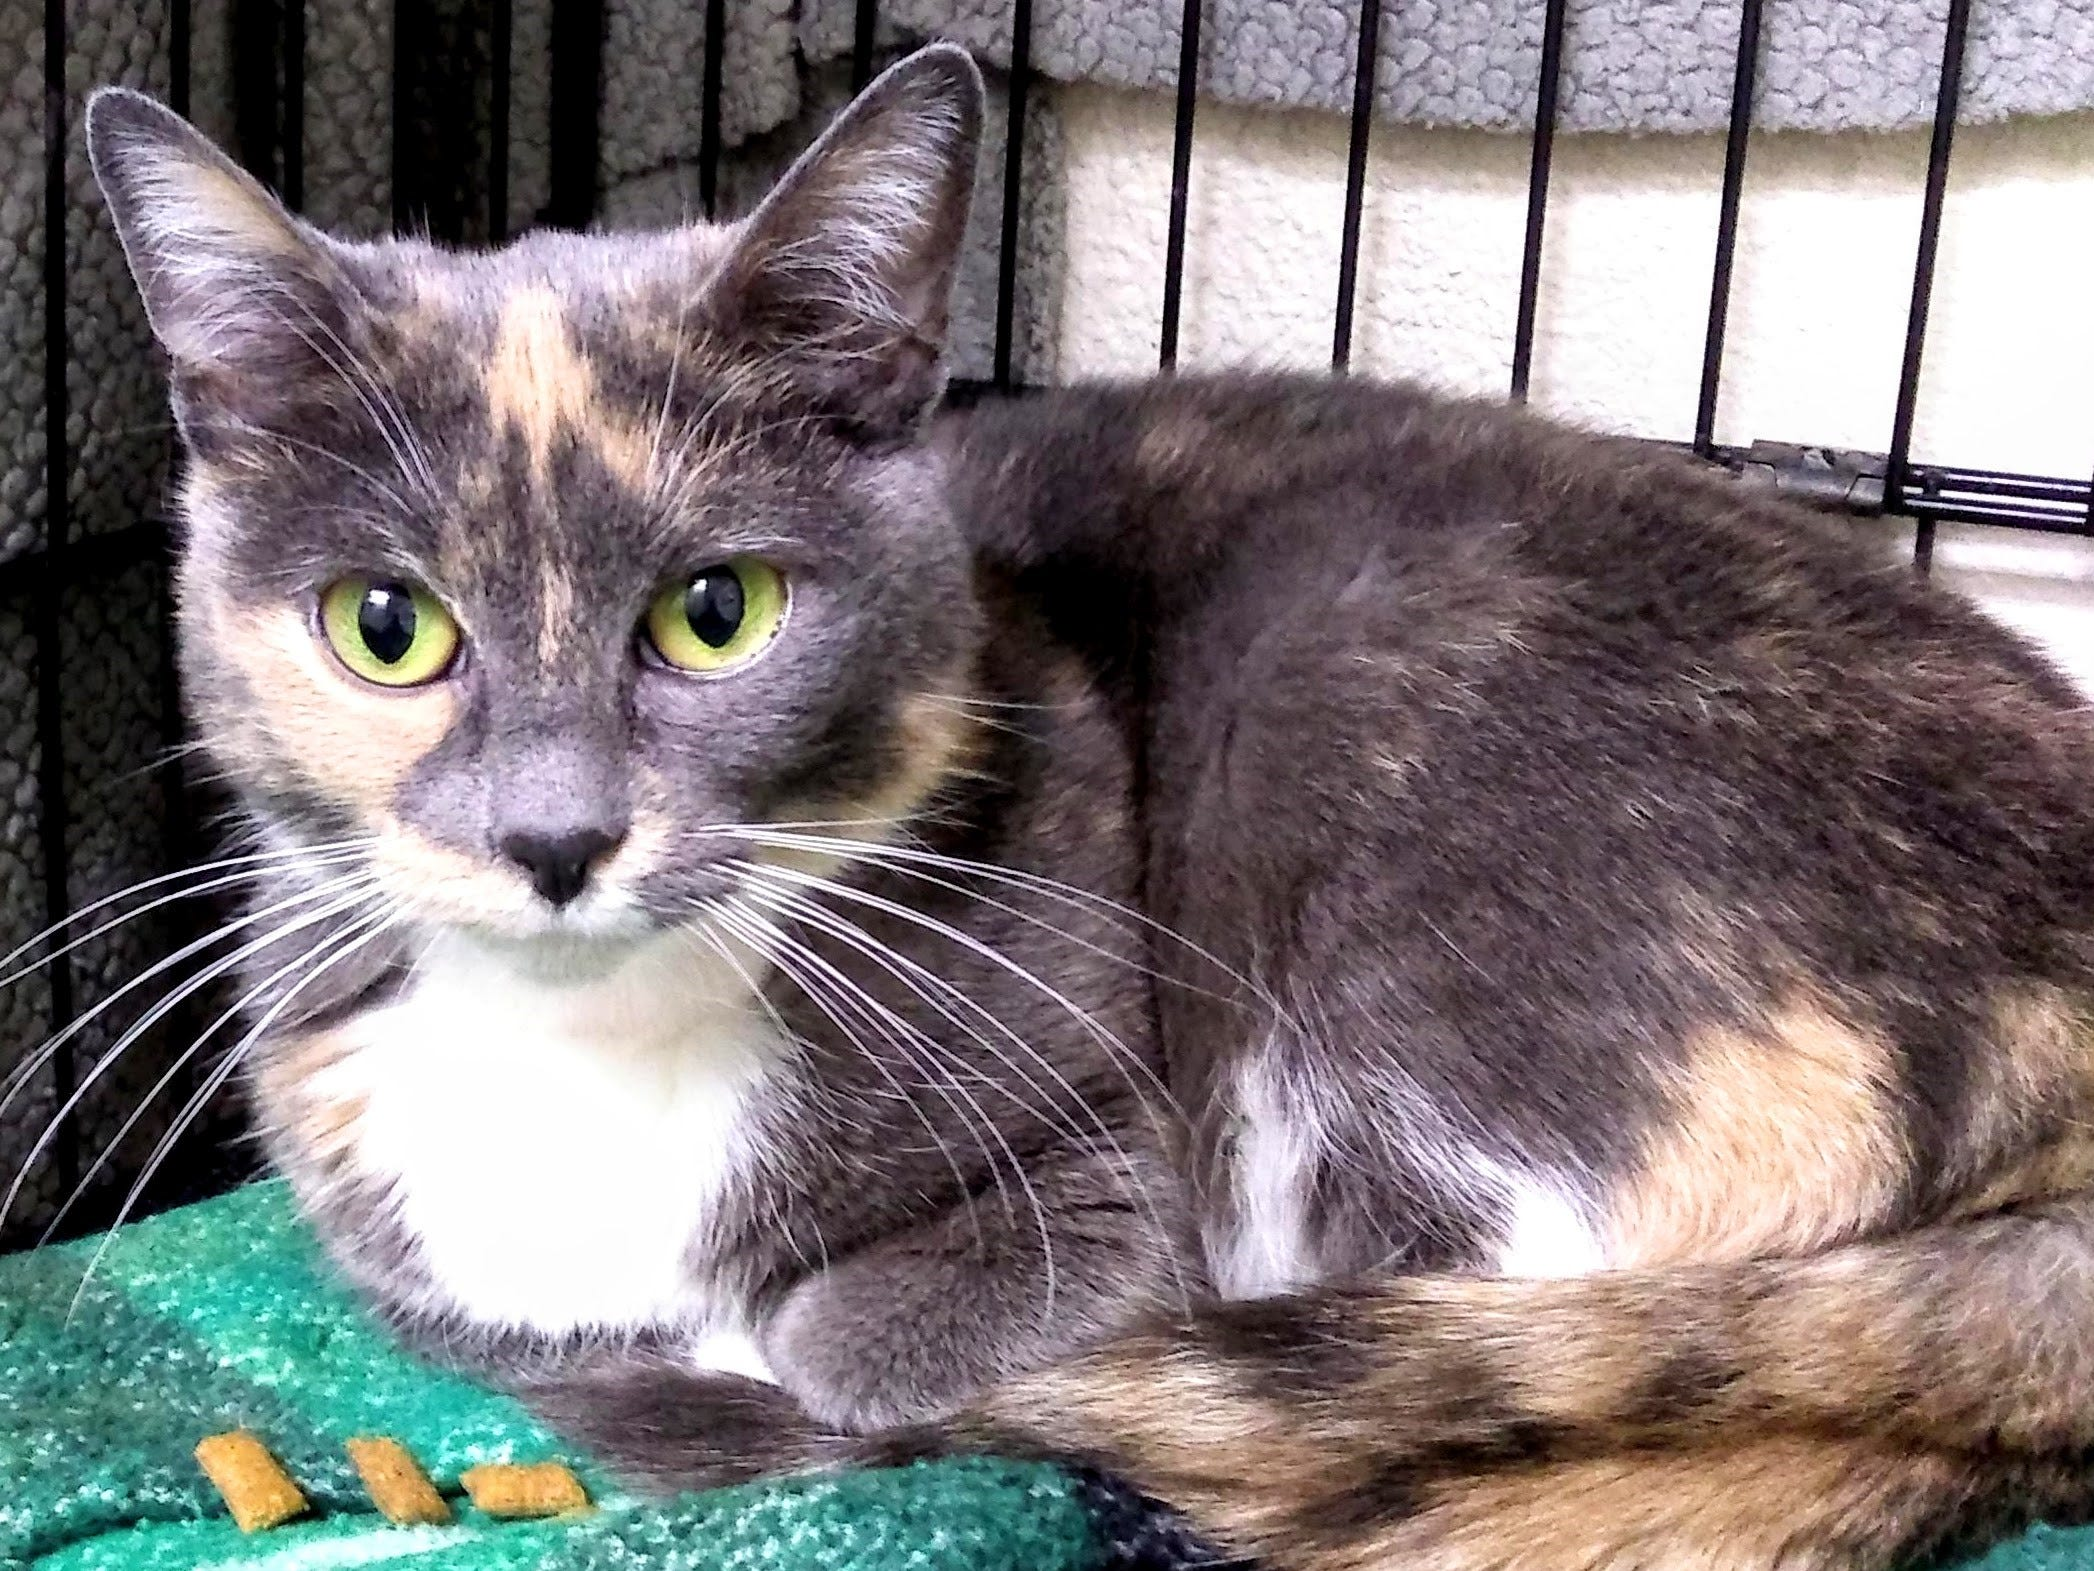 Amber is 7 years old. She is very sweet and loving. Amber loves to play and wants to be the only pet in the house. No children and a quiet home are a must. For more information, visit www.sfof.org or call 503-362-5611.